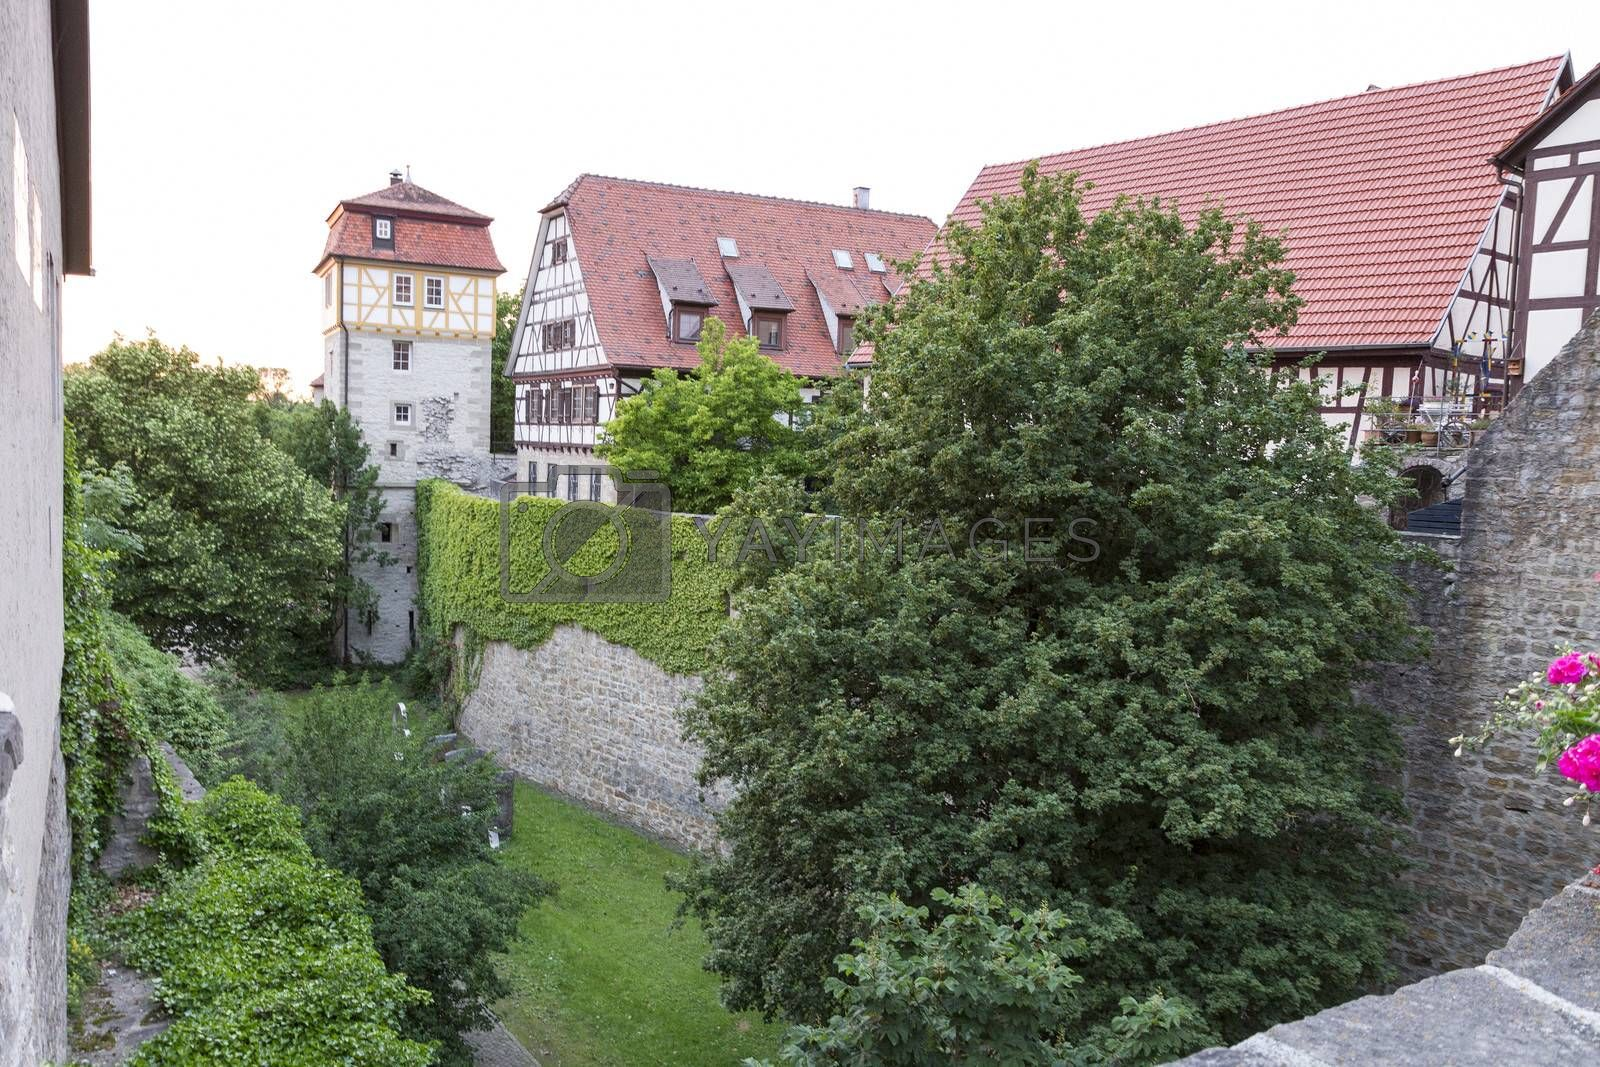 medieval buildings with half-timbered houses and moat